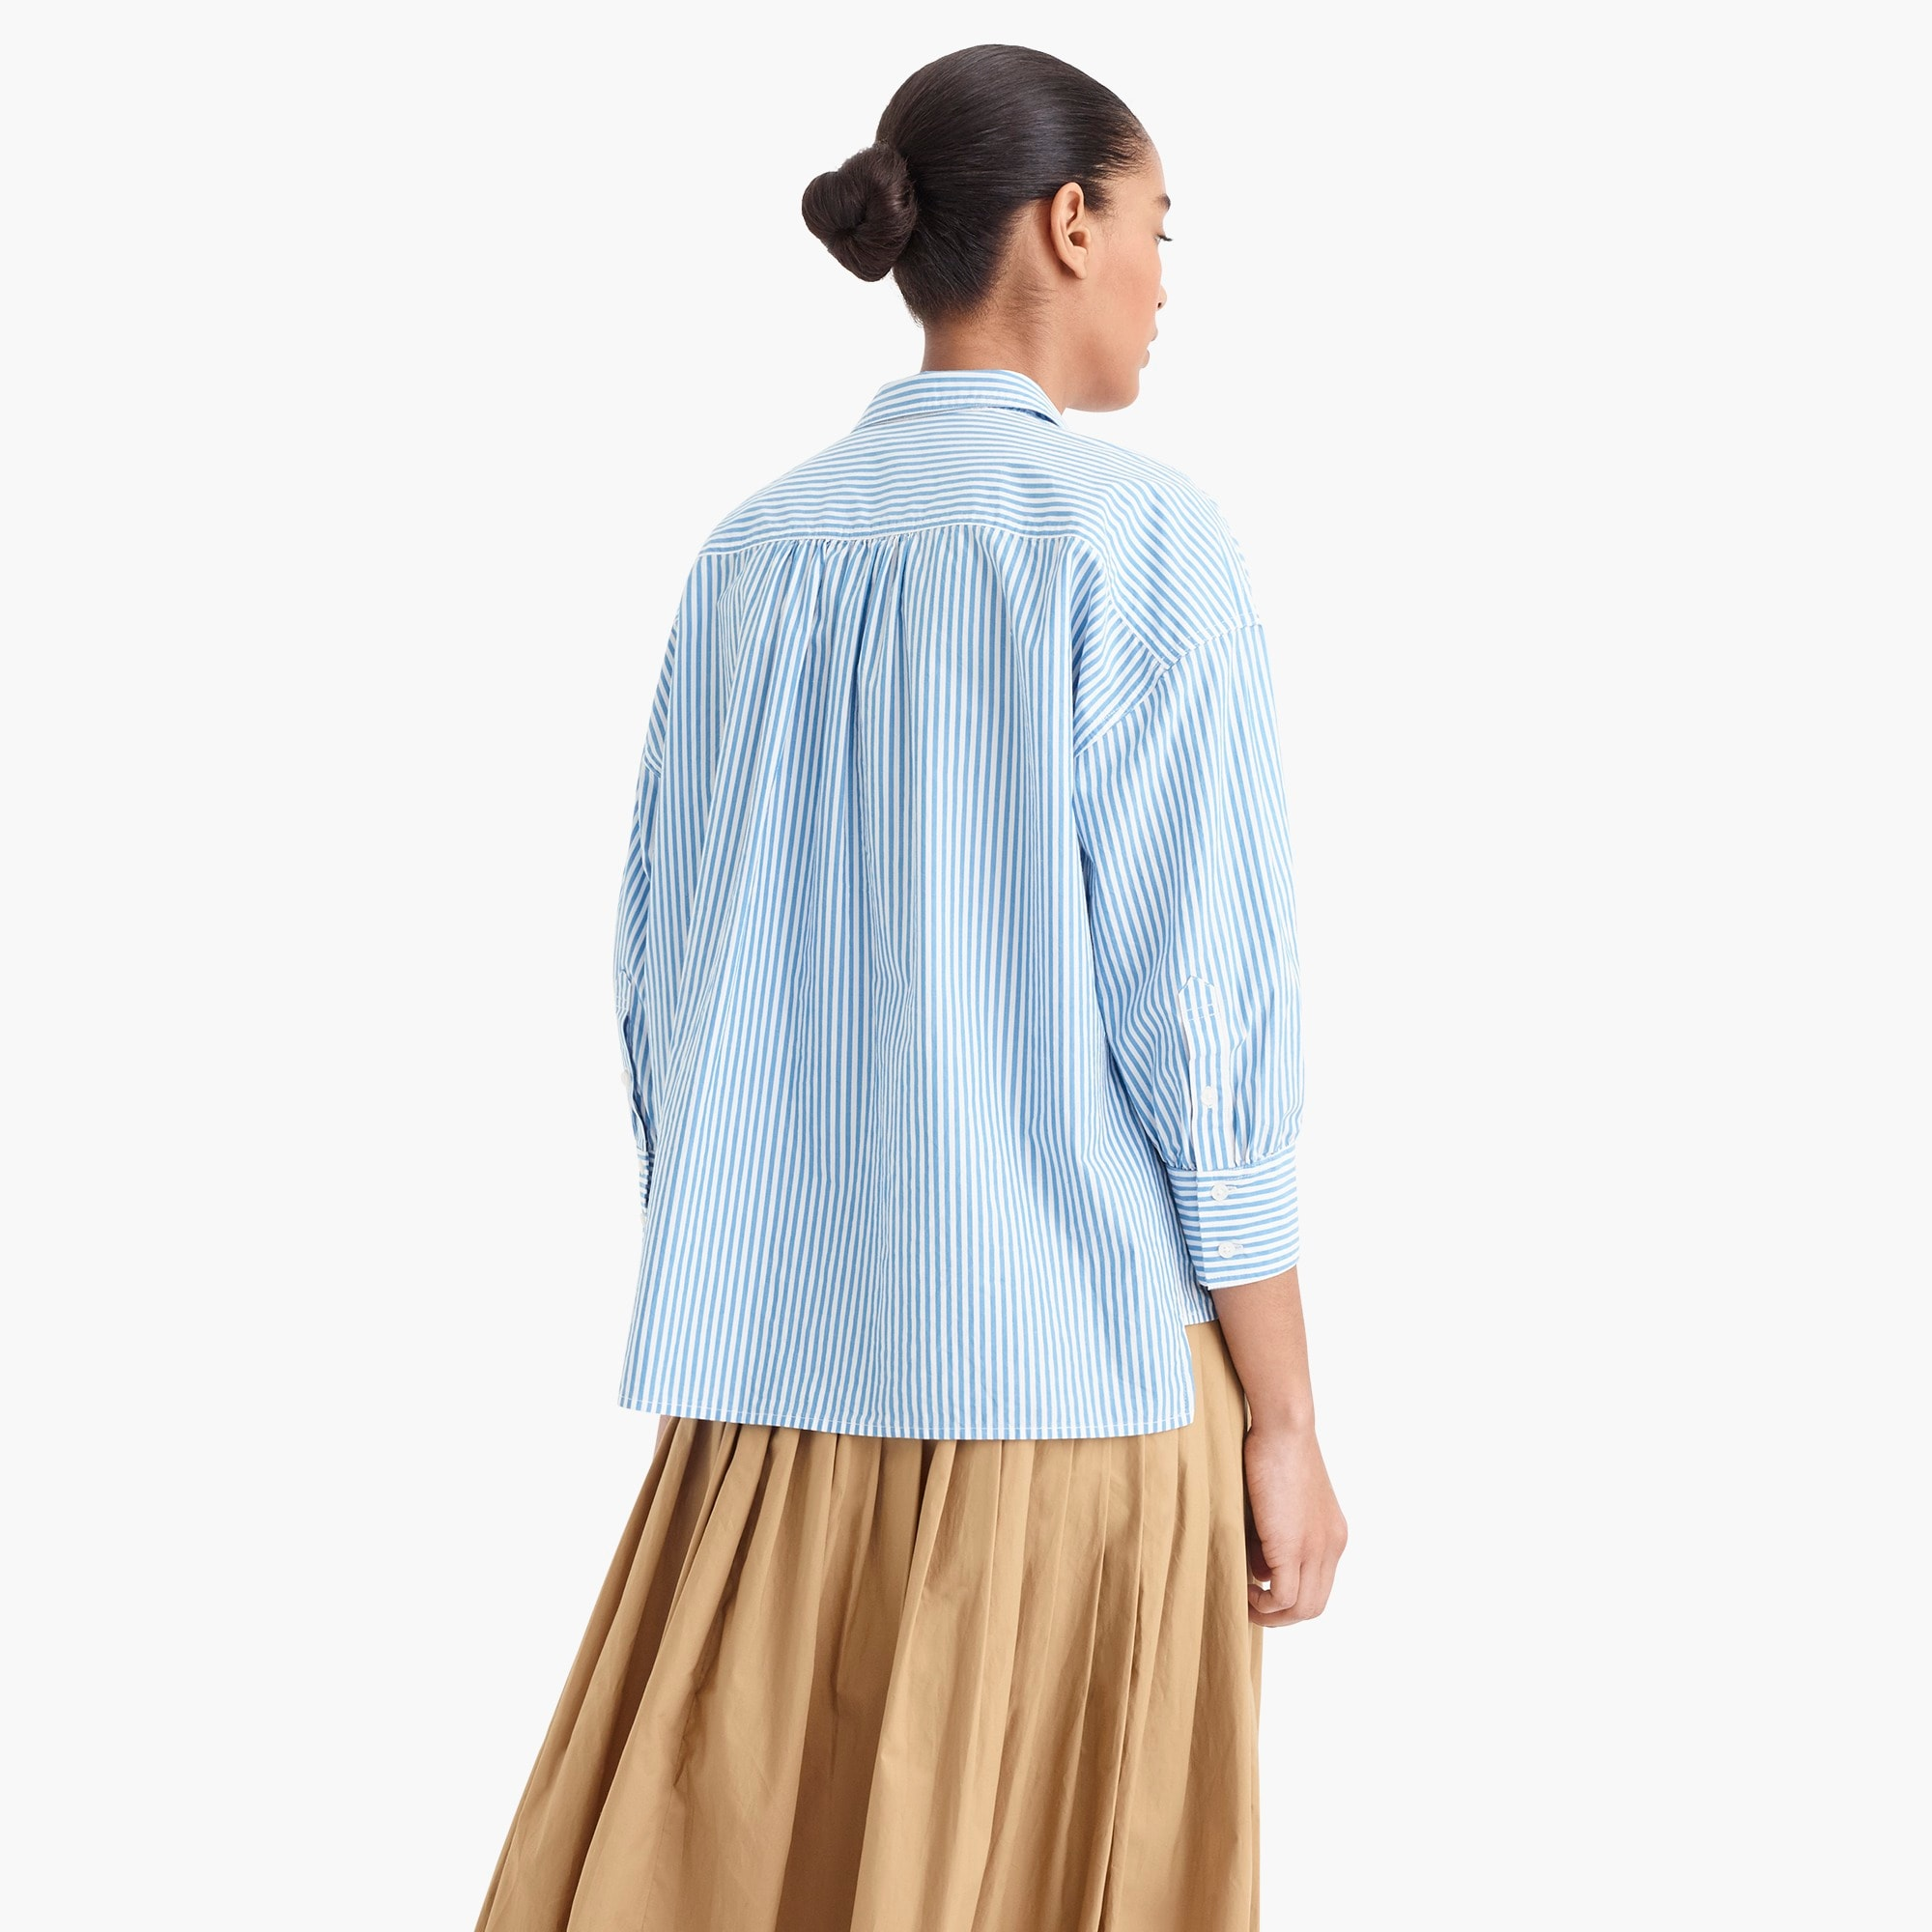 Image 5 for Oversized button-up in cotton poplin stripe